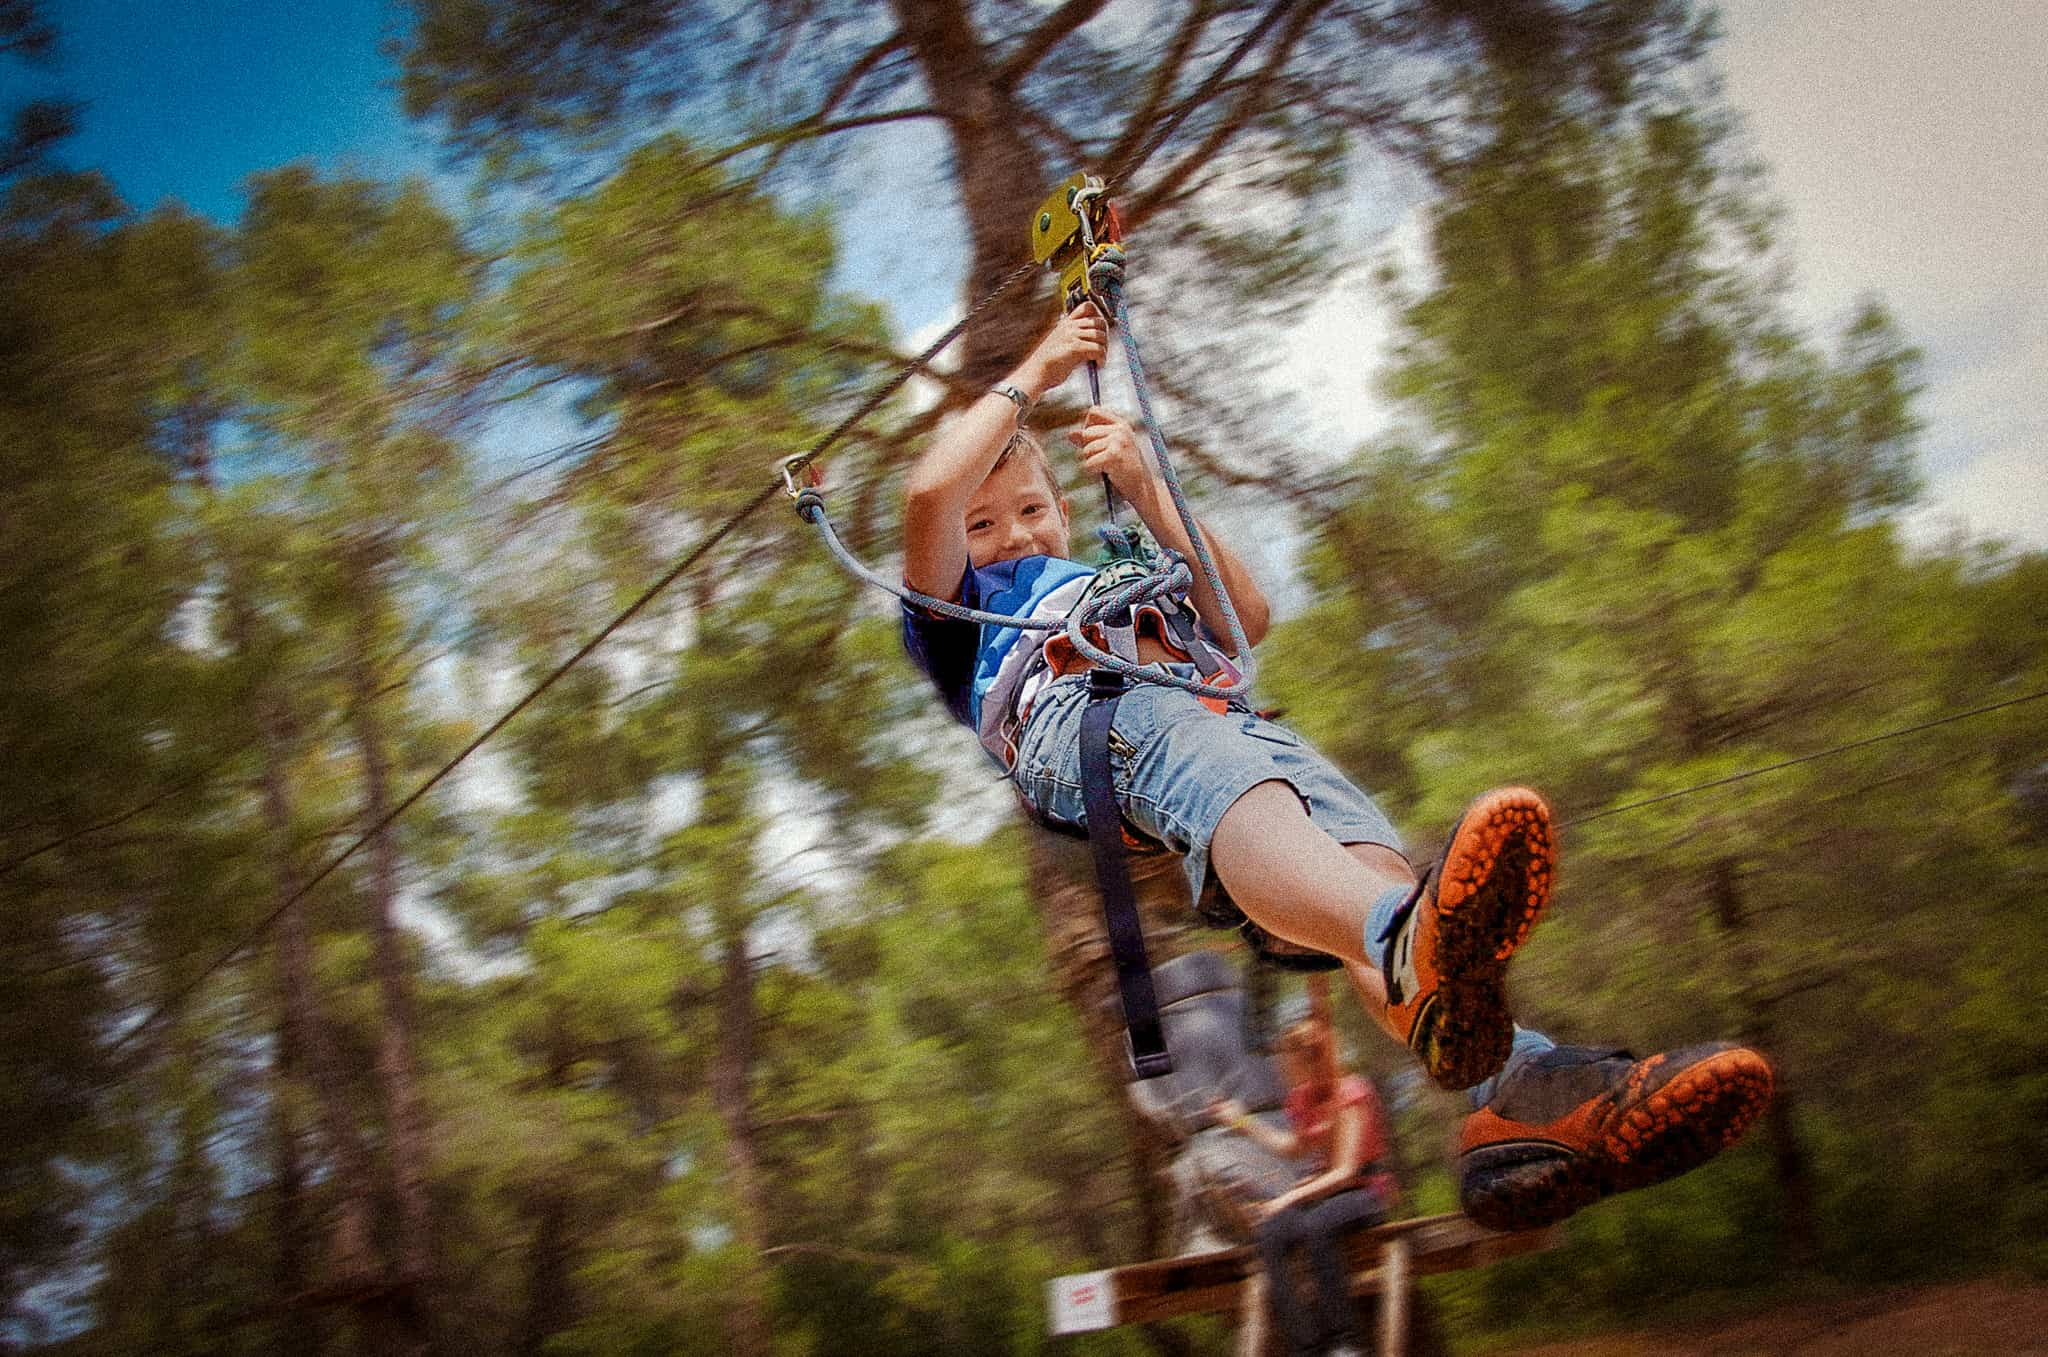 Leisure,and,activities,on,nature.,small,boy,hanging,and,rolling